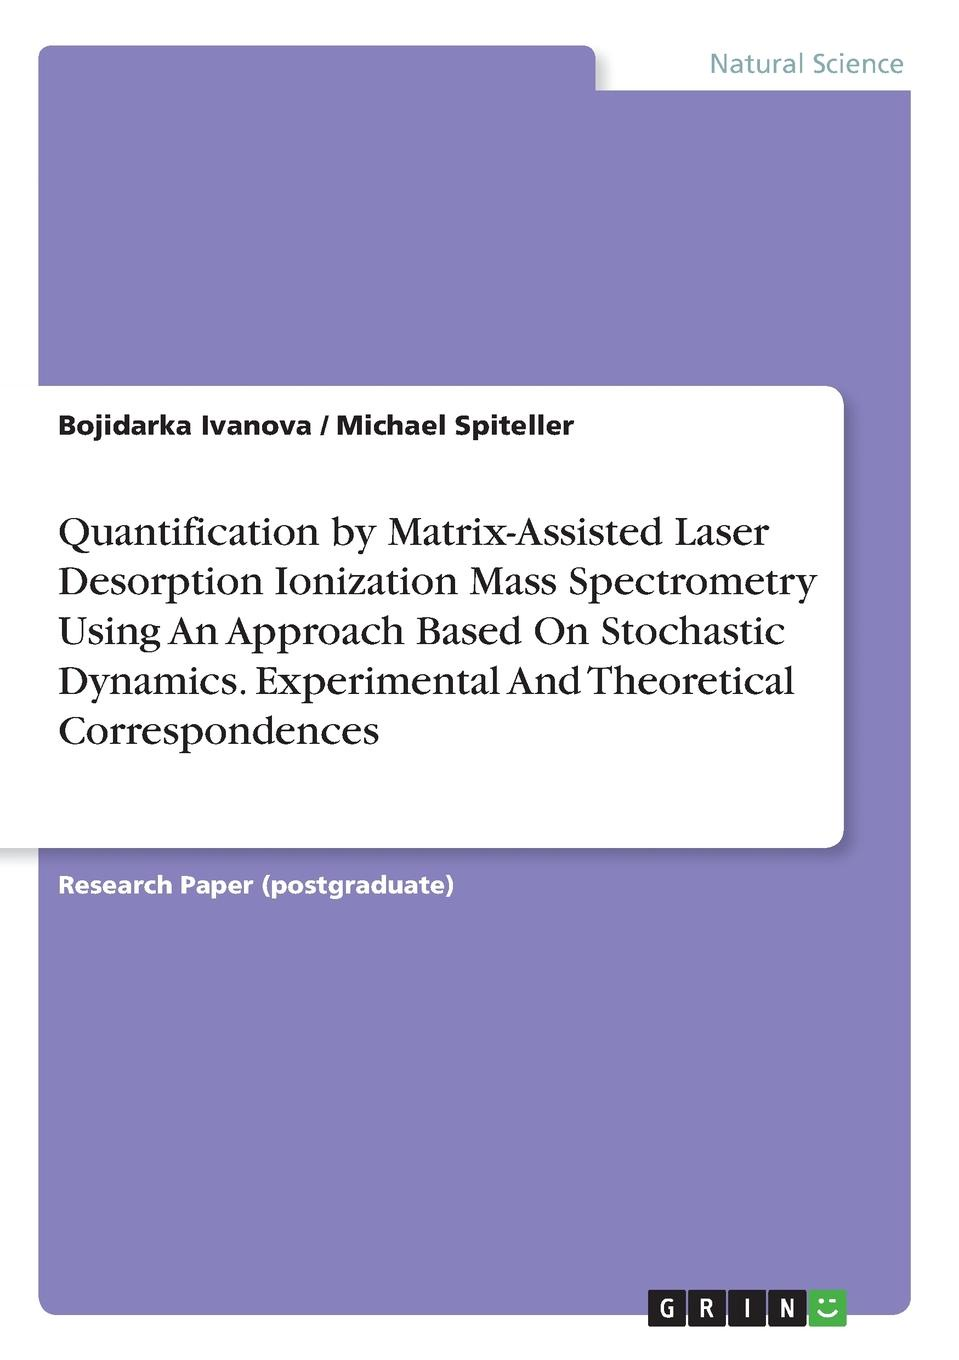 Bojidarka Ivanova, Michael Spiteller Quantification by Matrix-Assisted Laser Desorption Ionization Mass Spectrometry Using An Approach Based On Stochastic Dynamics. Experimental And Theoretical Correspondences недорго, оригинальная цена